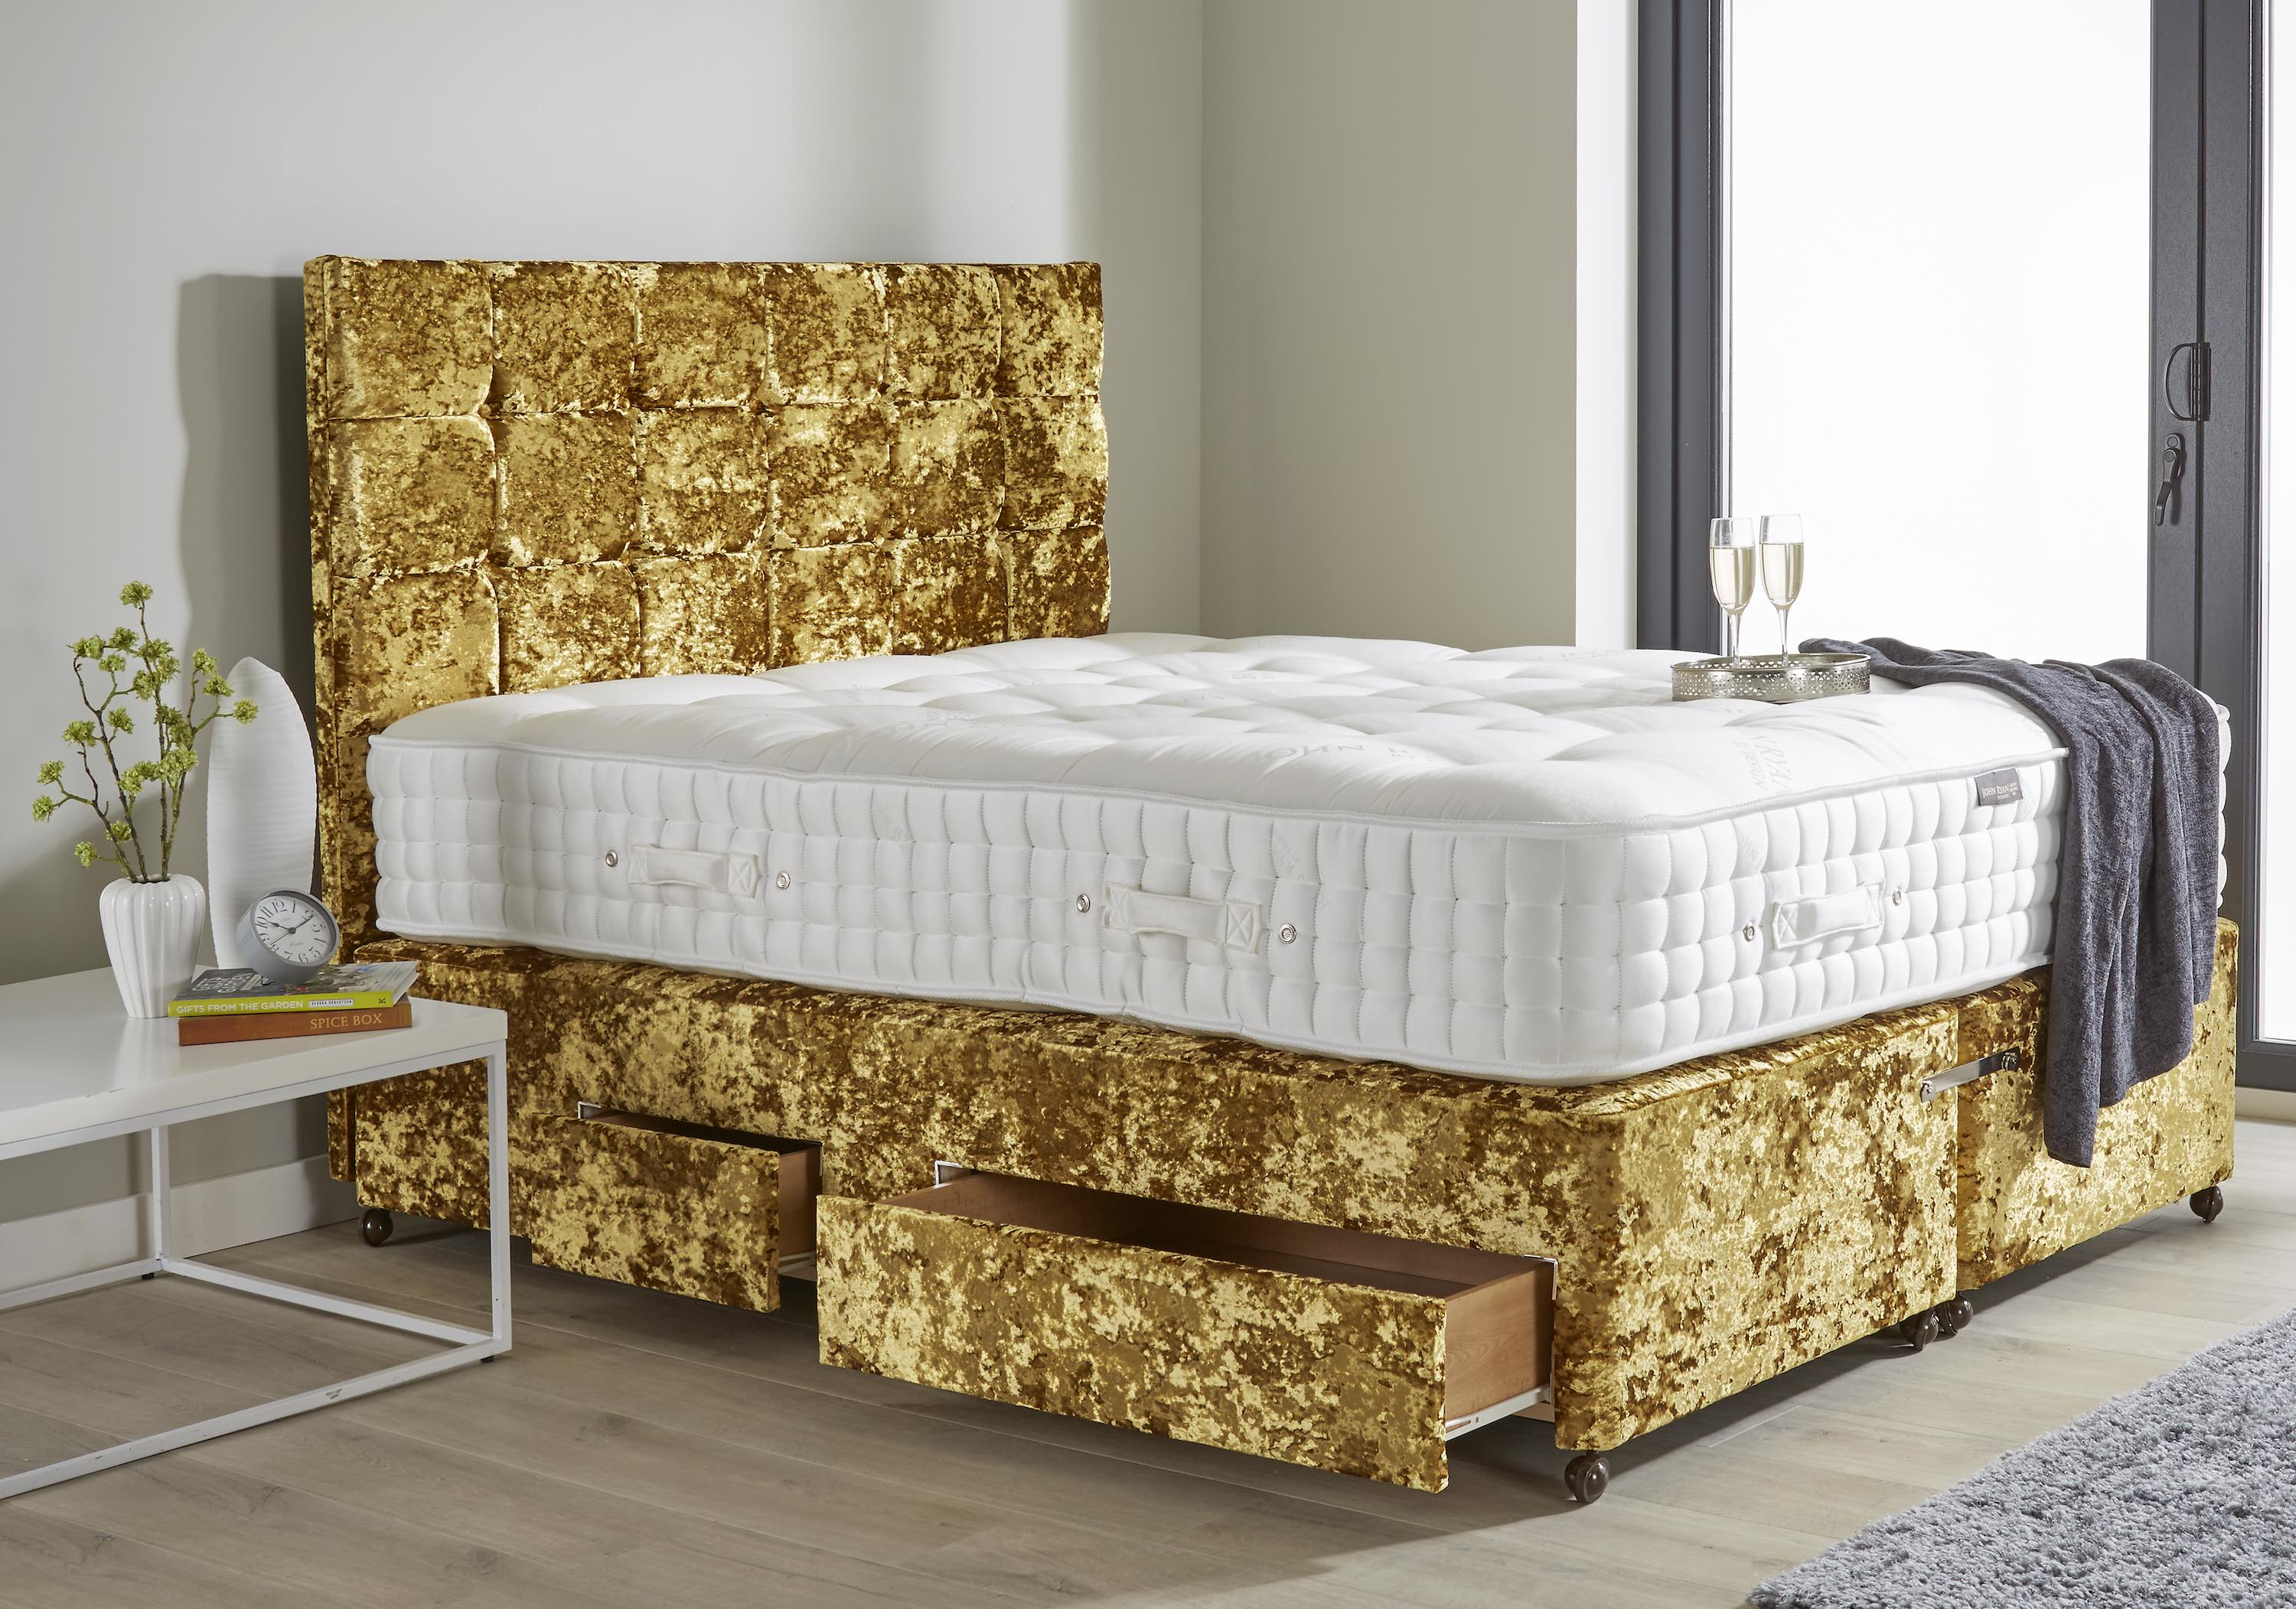 The aesthetic of your bed, like this daring model can really liven up a room